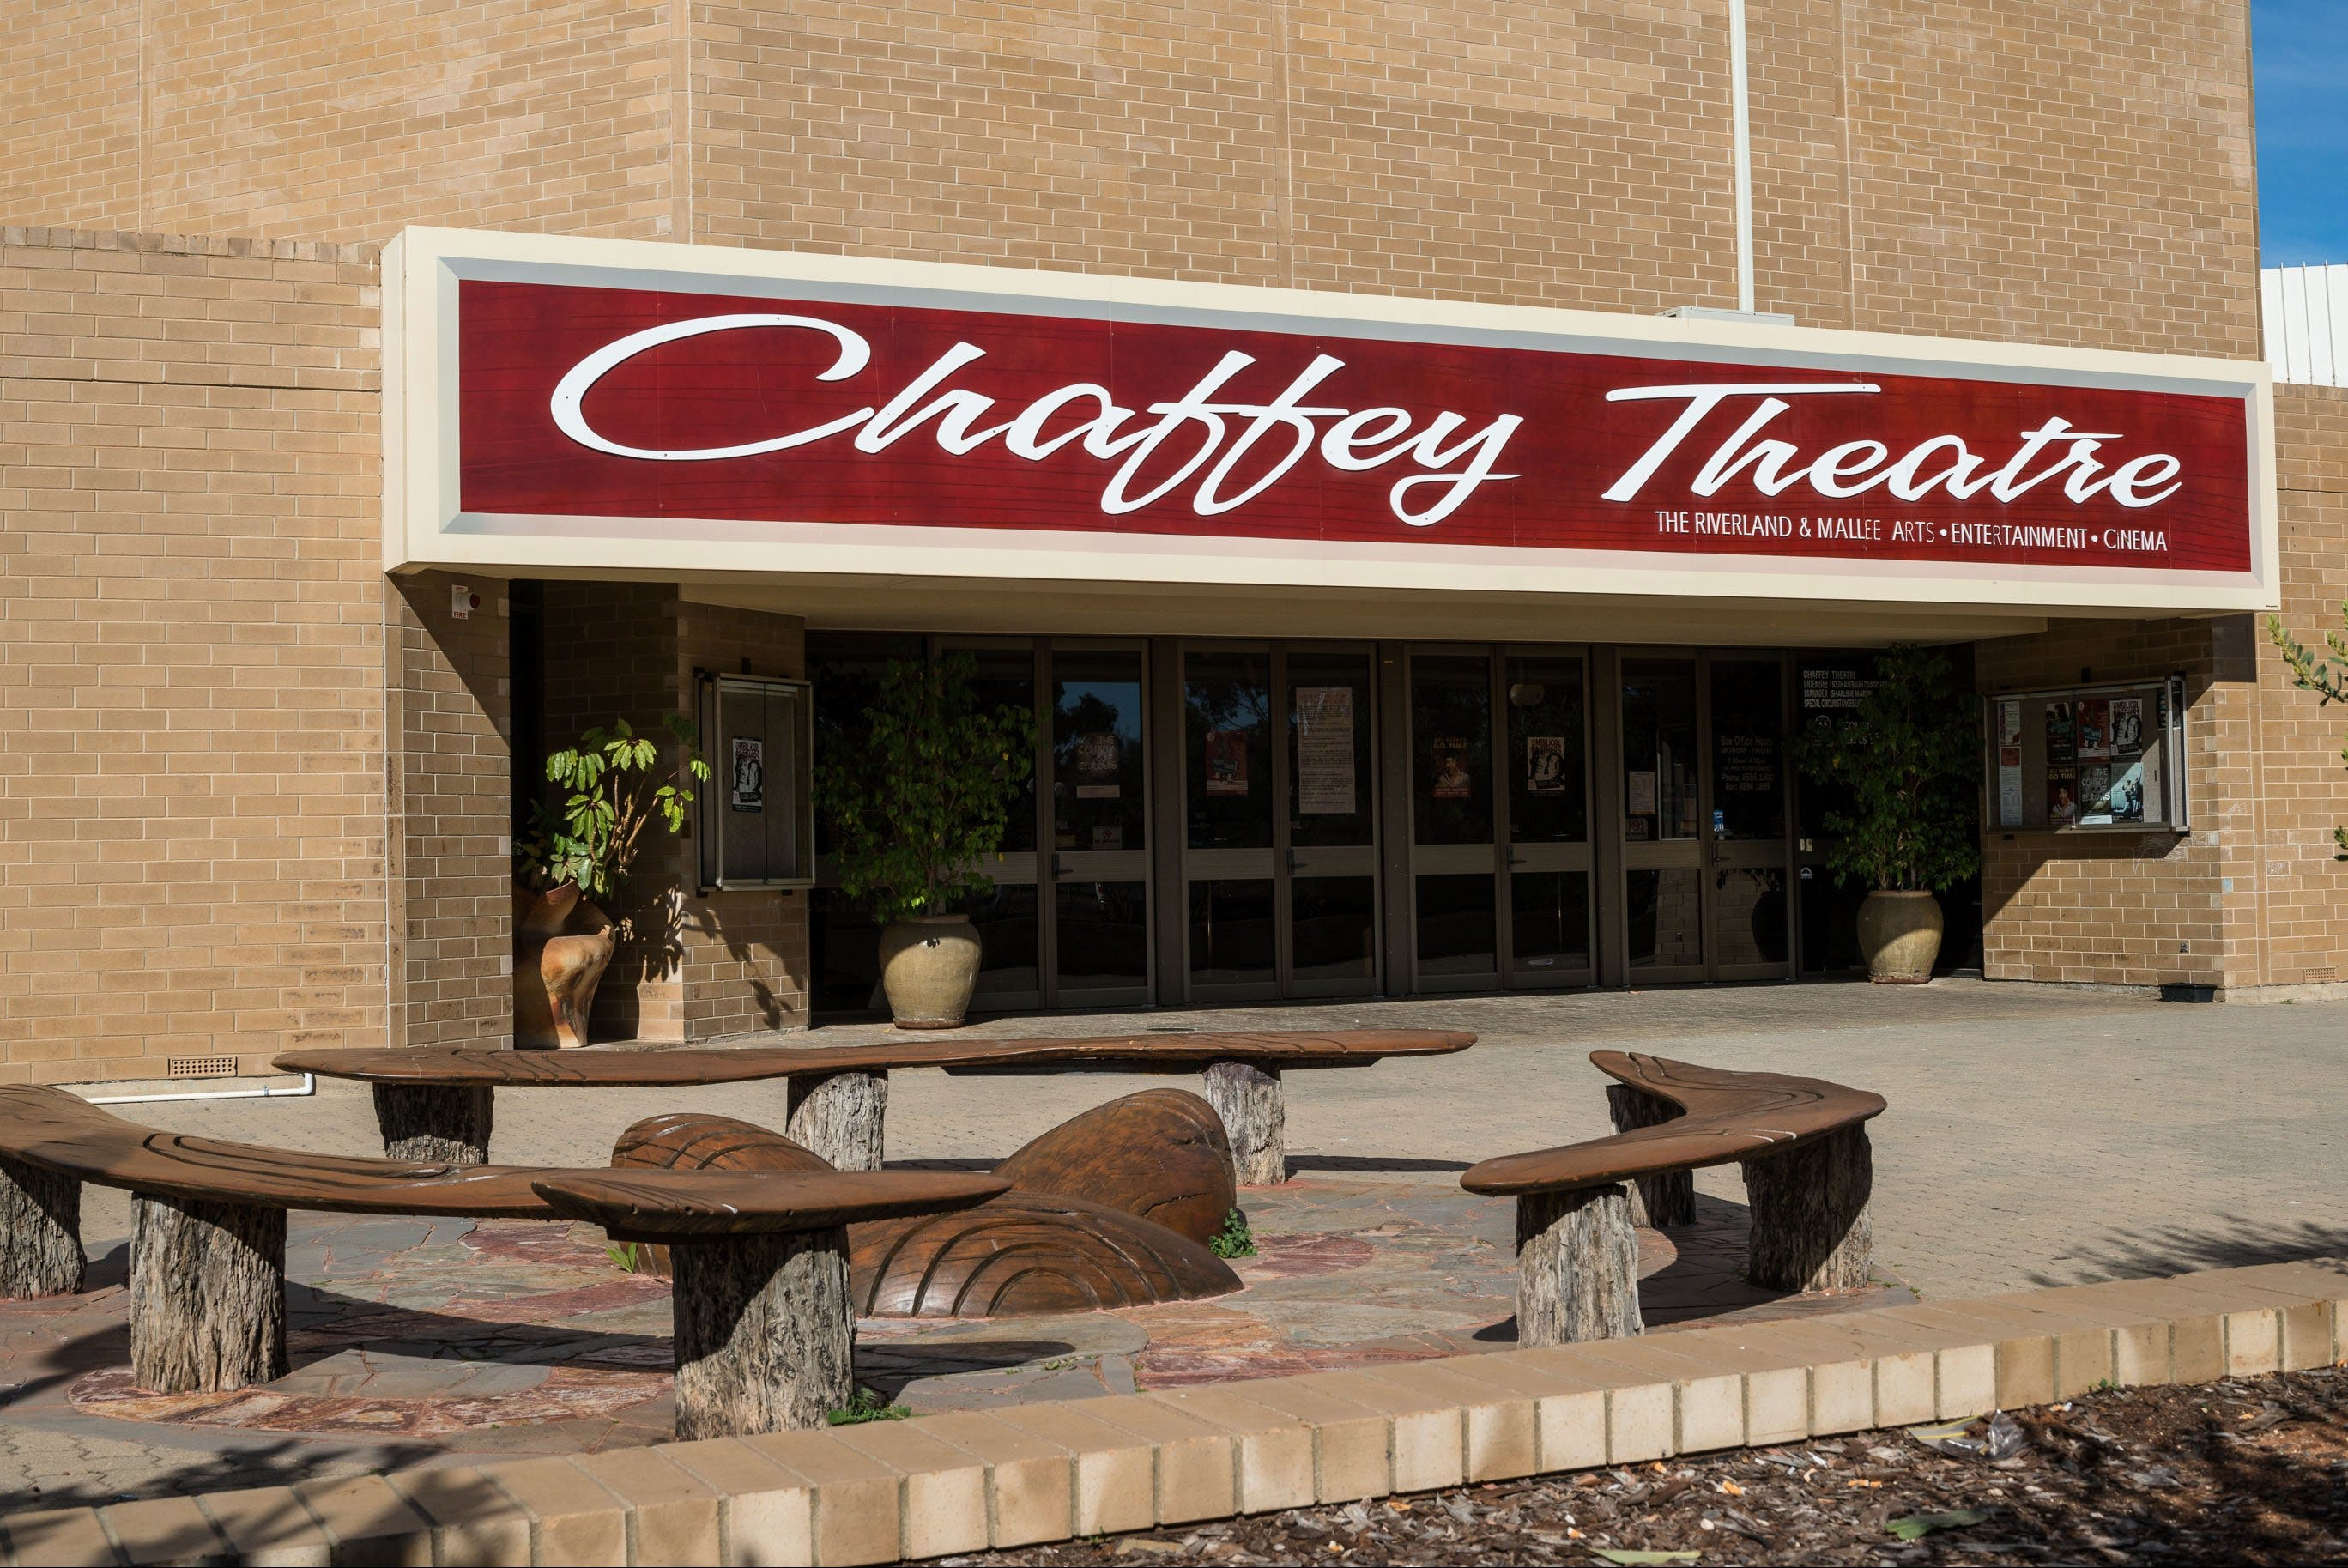 Chaffey Theatre - Accommodation in Bendigo